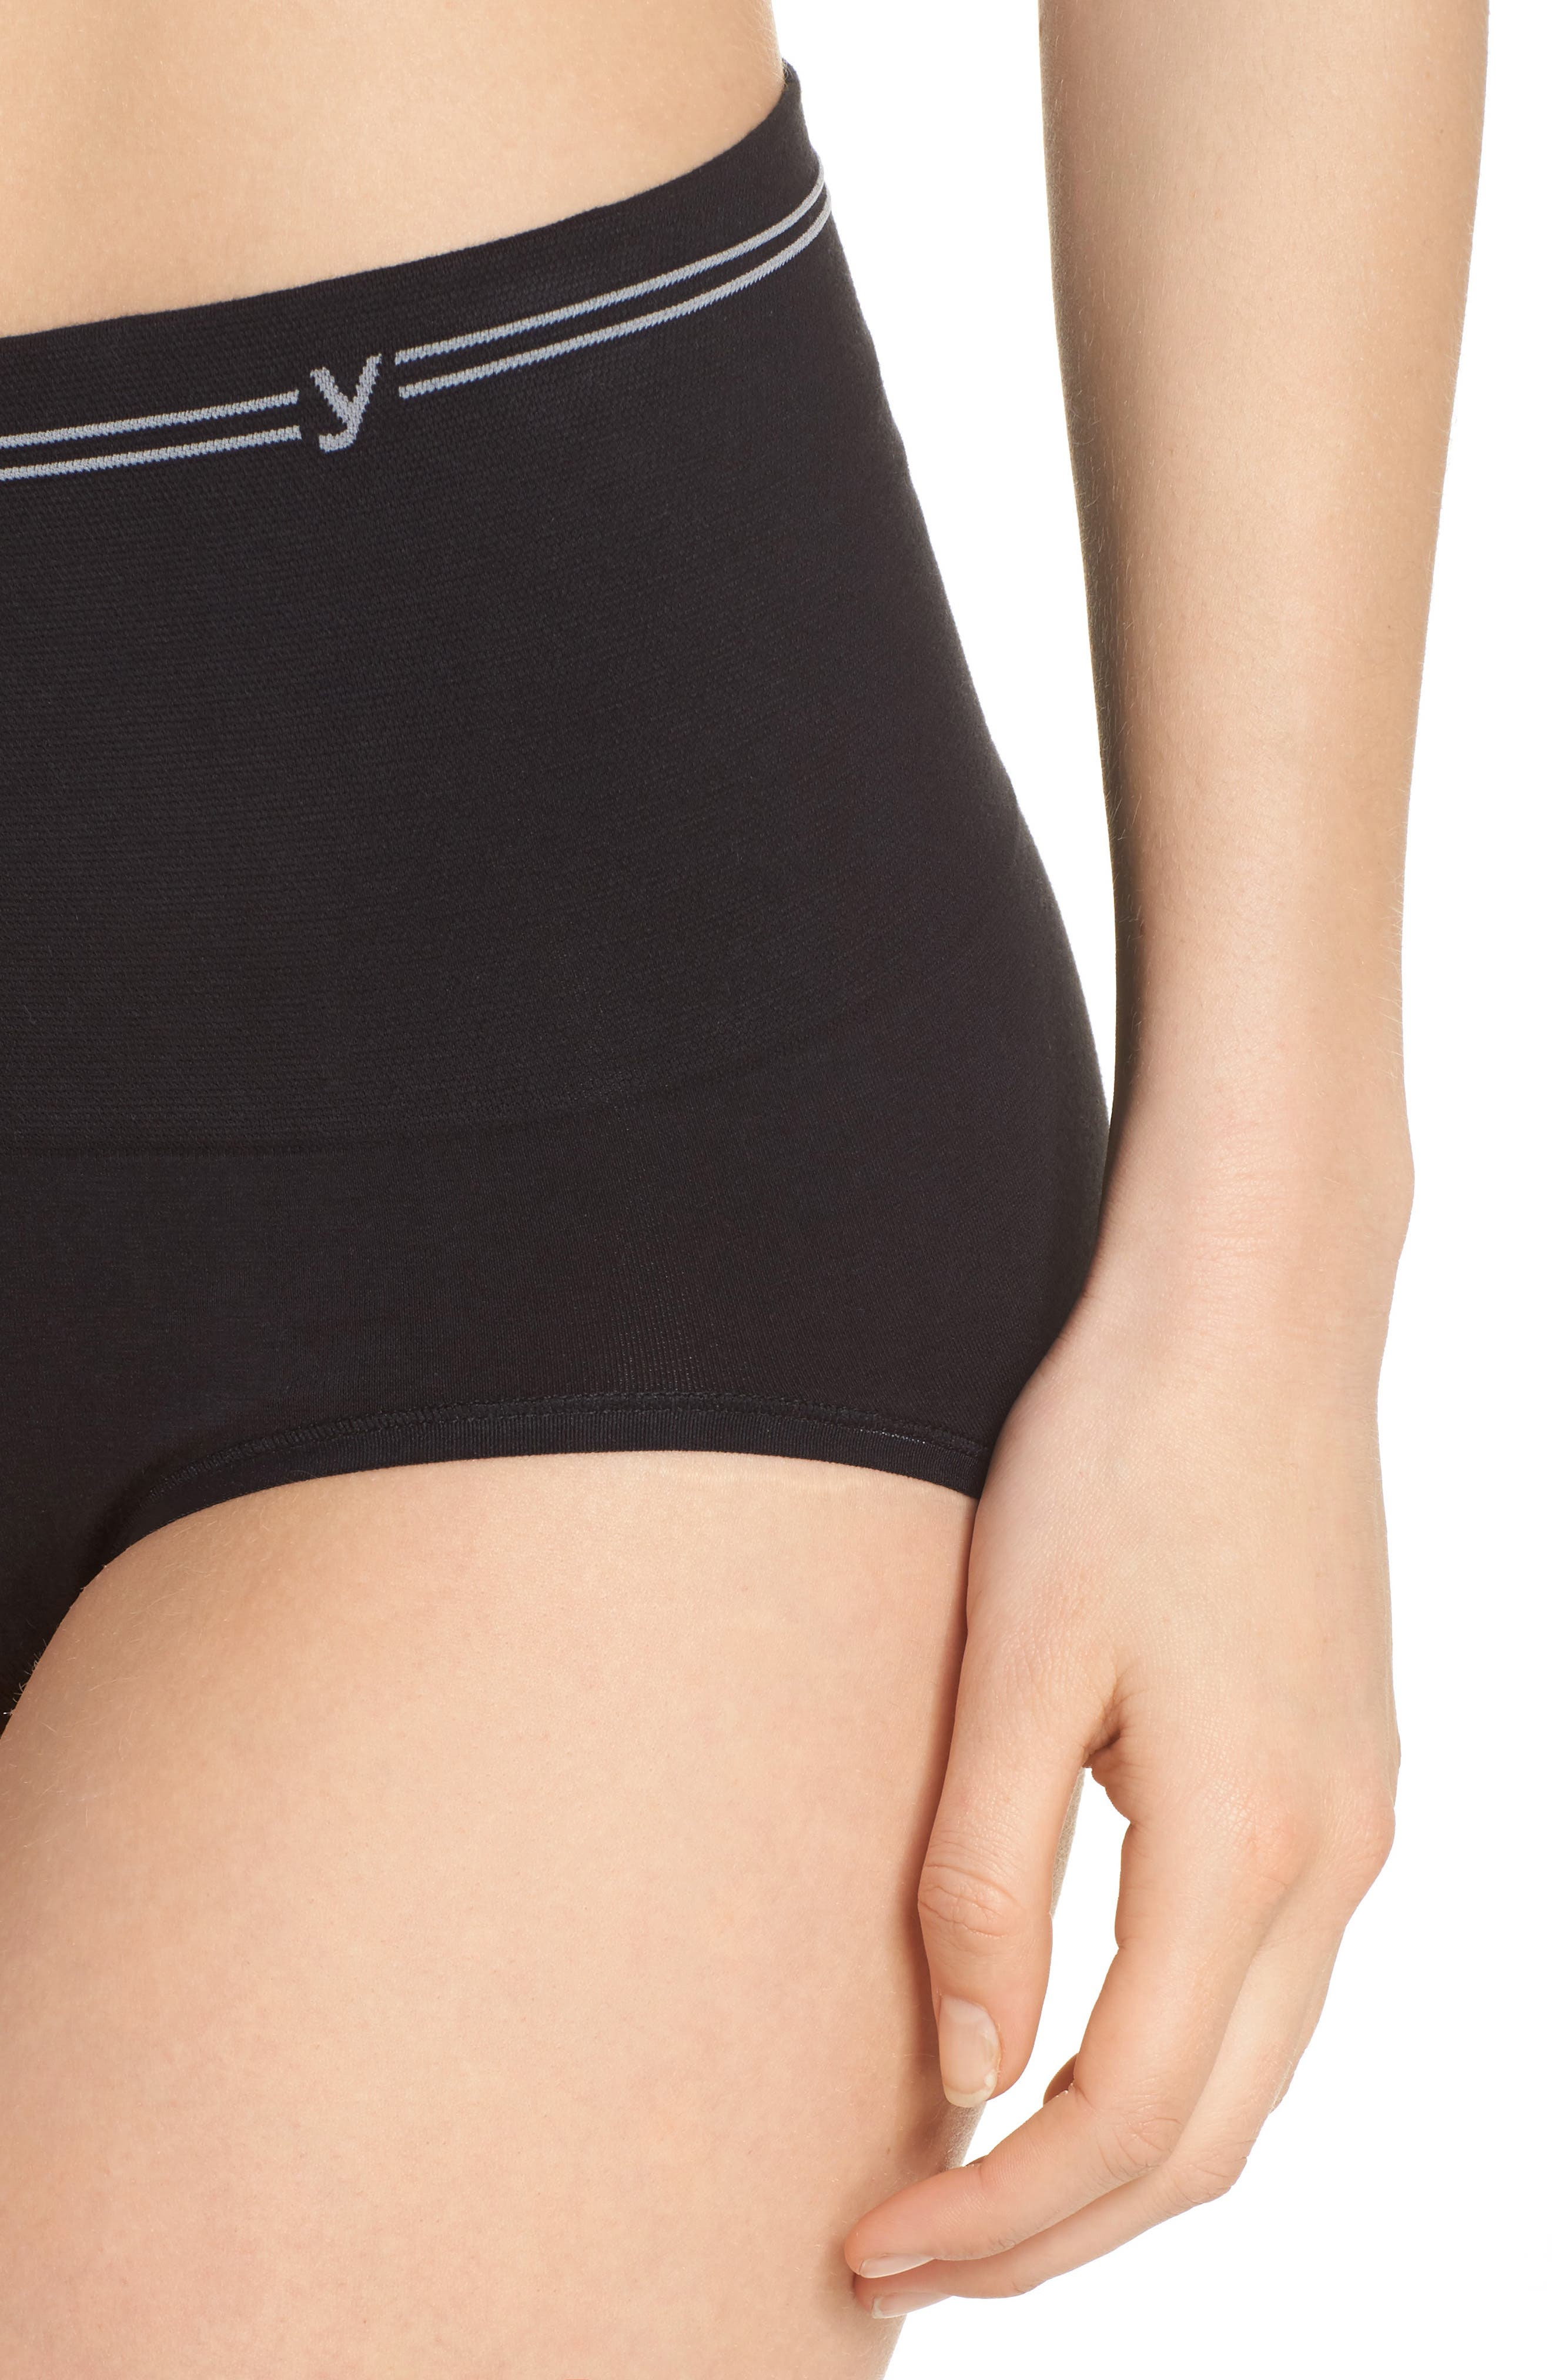 Seamless Shaping Briefs,                             Alternate thumbnail 8, color,                             Black